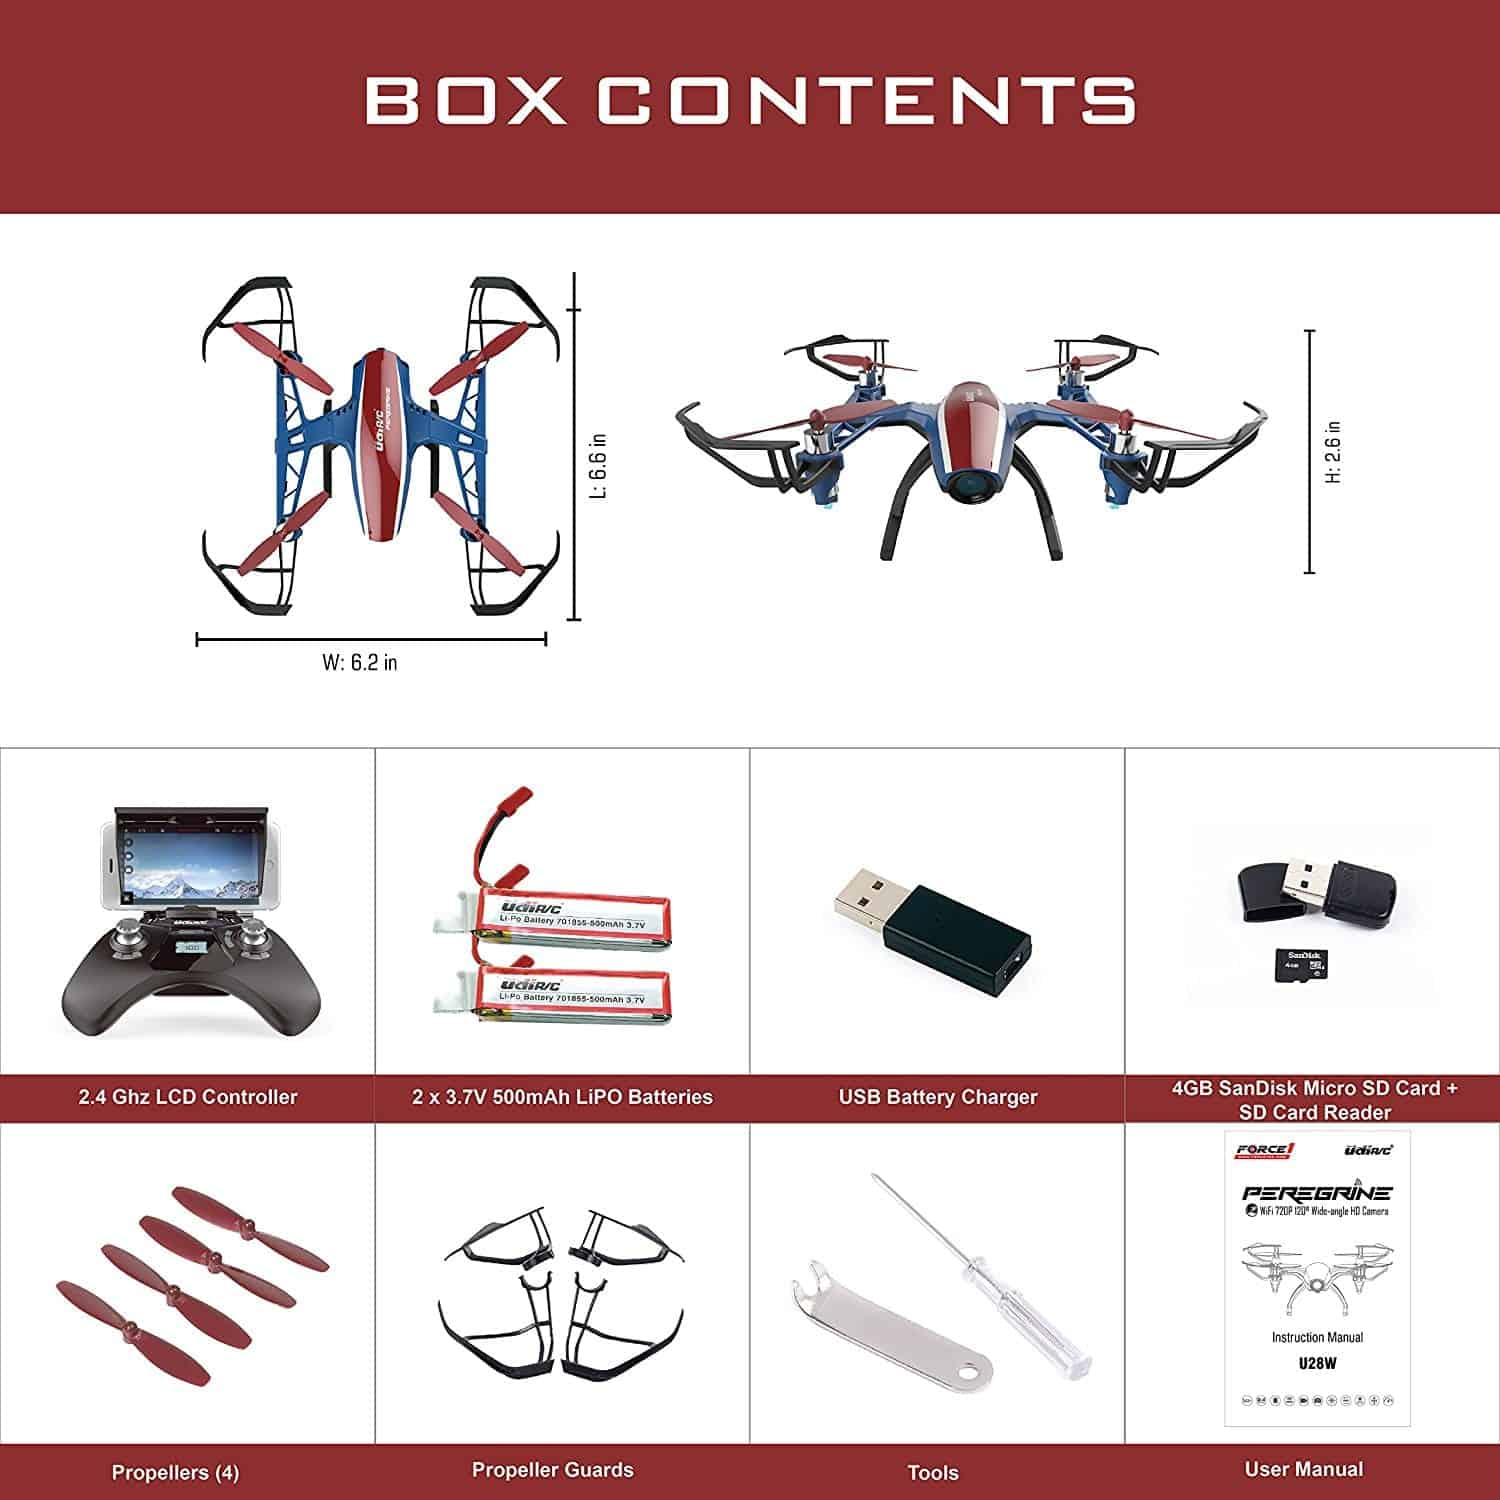 Top 17 Cheap Drones Under 180 Uav Coach 2018 Buying Guide Lipo Offers 10 Minute Flight Time Depending On The Modes U28w Wifi Fpv Drone